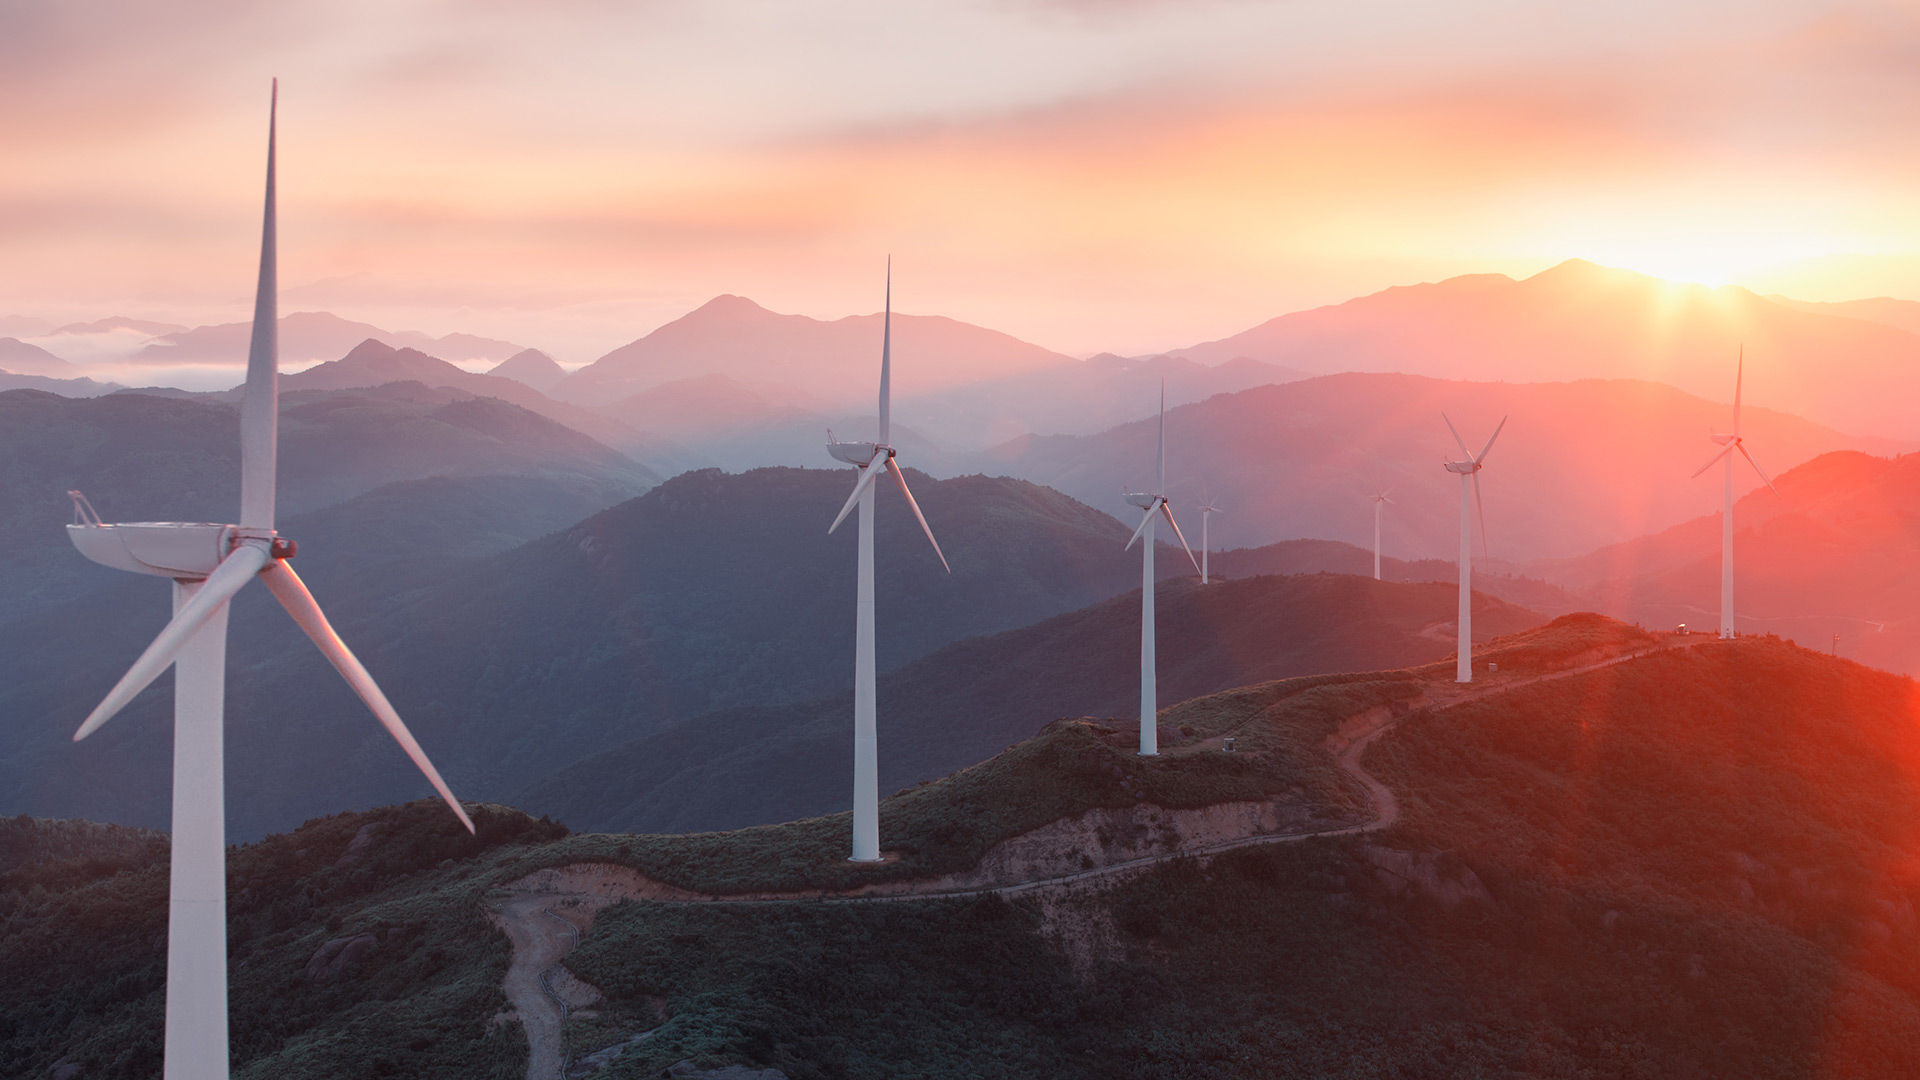 Wind turbines on mountains